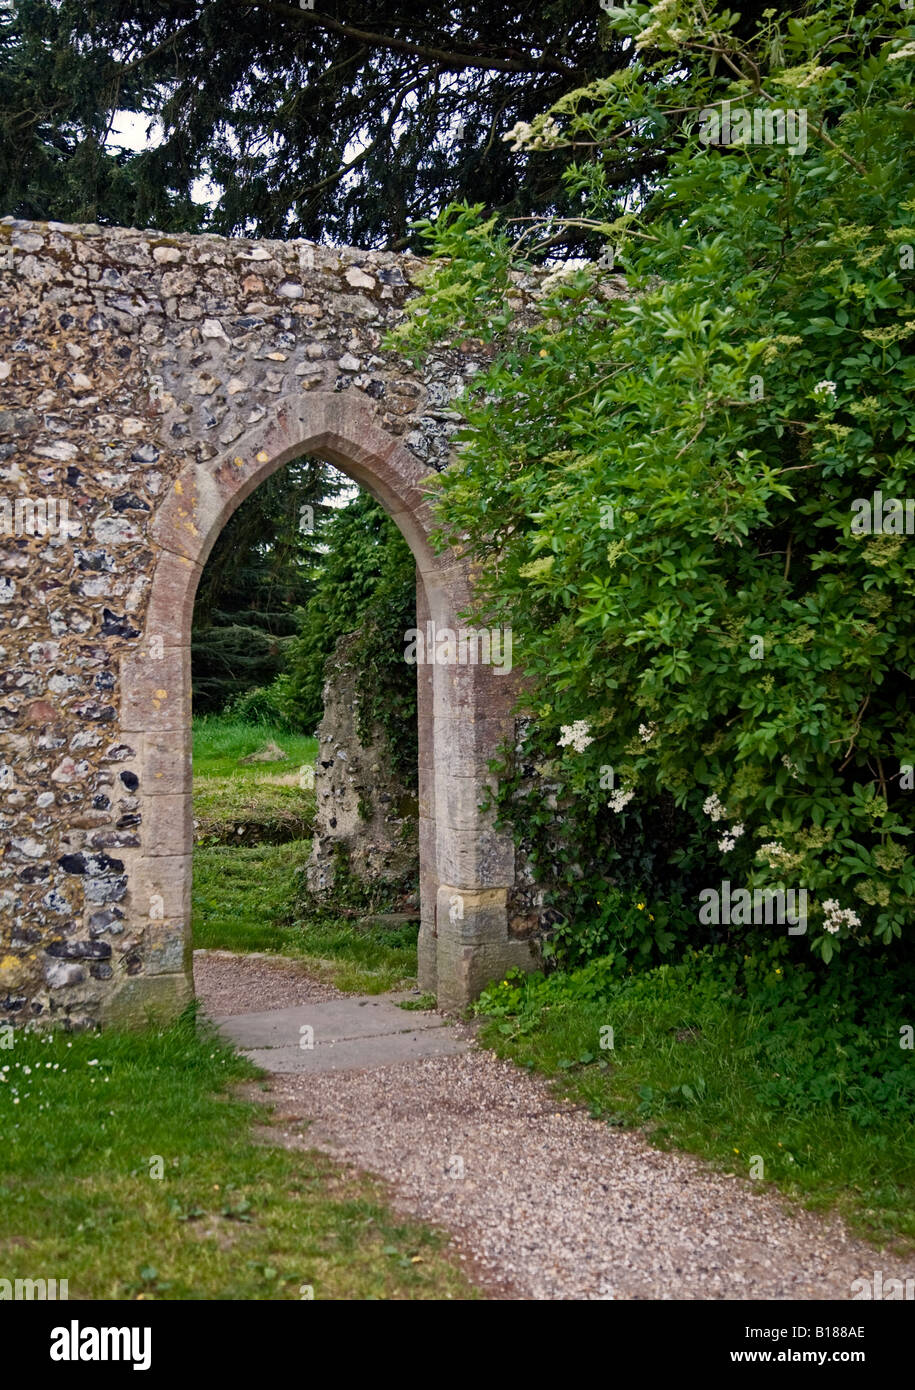 Gewölbte Tor Skelettteile Priory, West Sussex, England Stockfoto ...